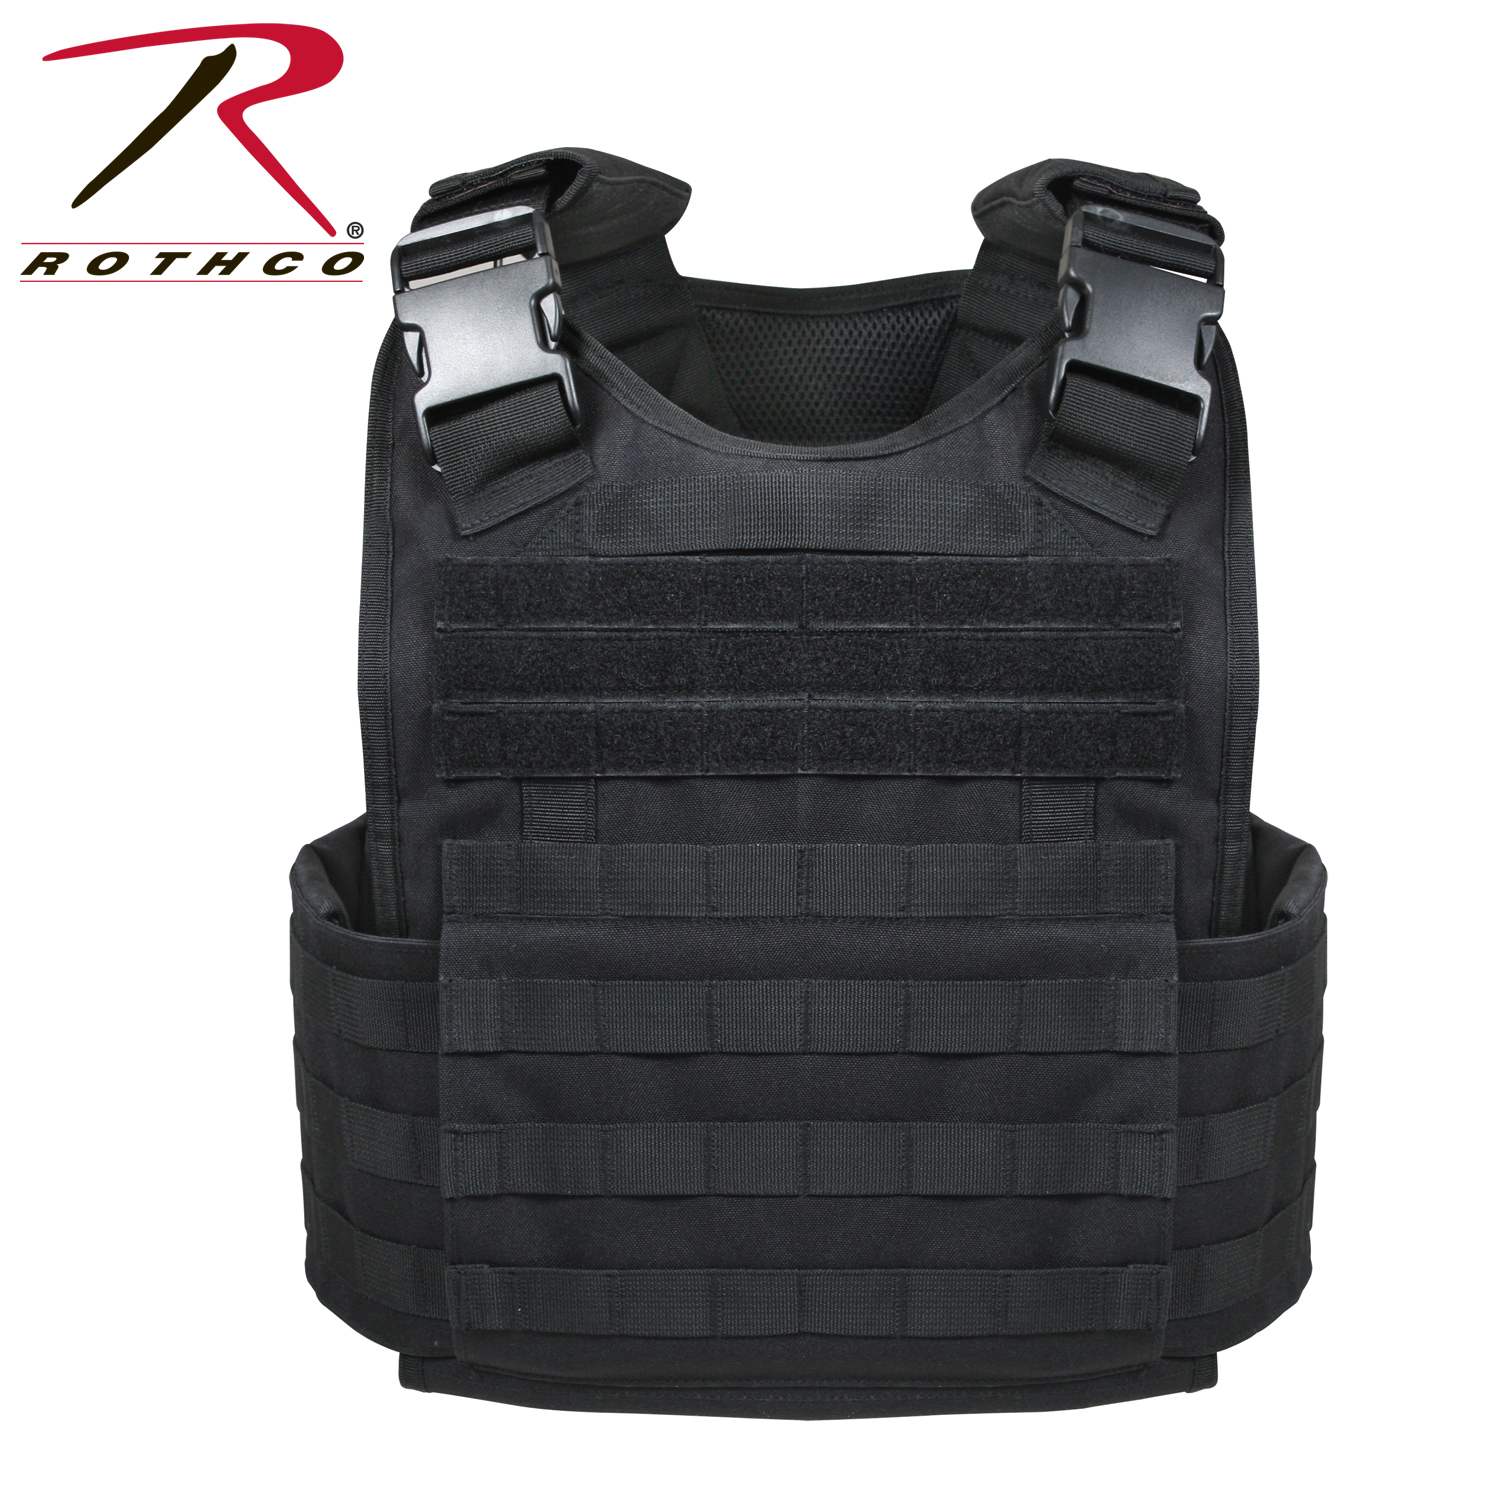 Carrier Rothco Rothco Molle Molle Plate Vest nwm8vNO0